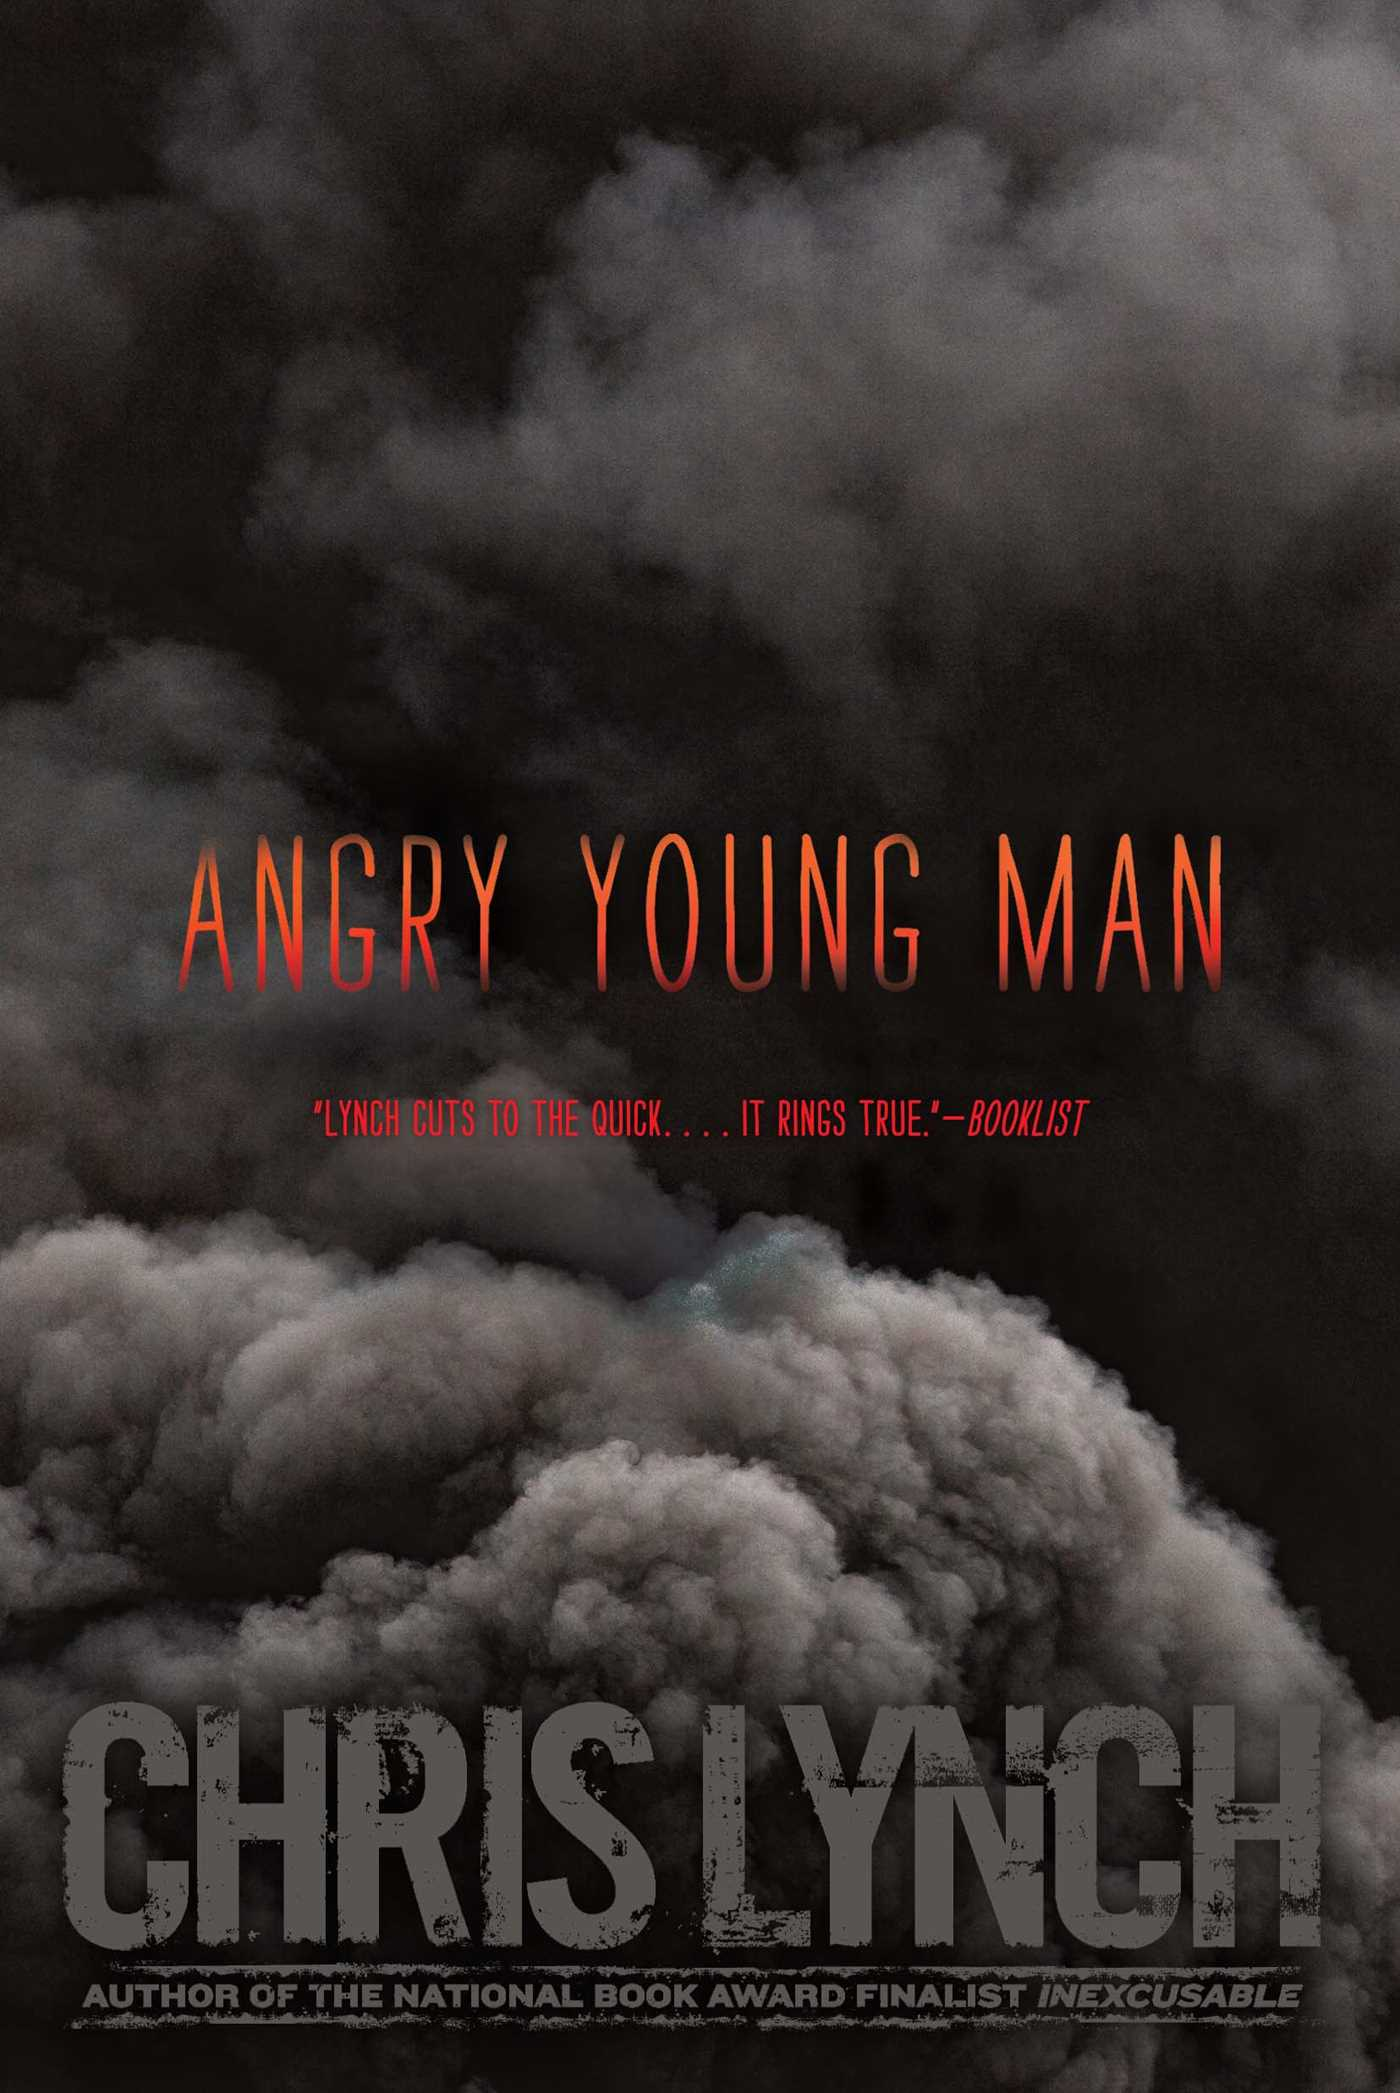 Angry-young-man-9781442419896_hr